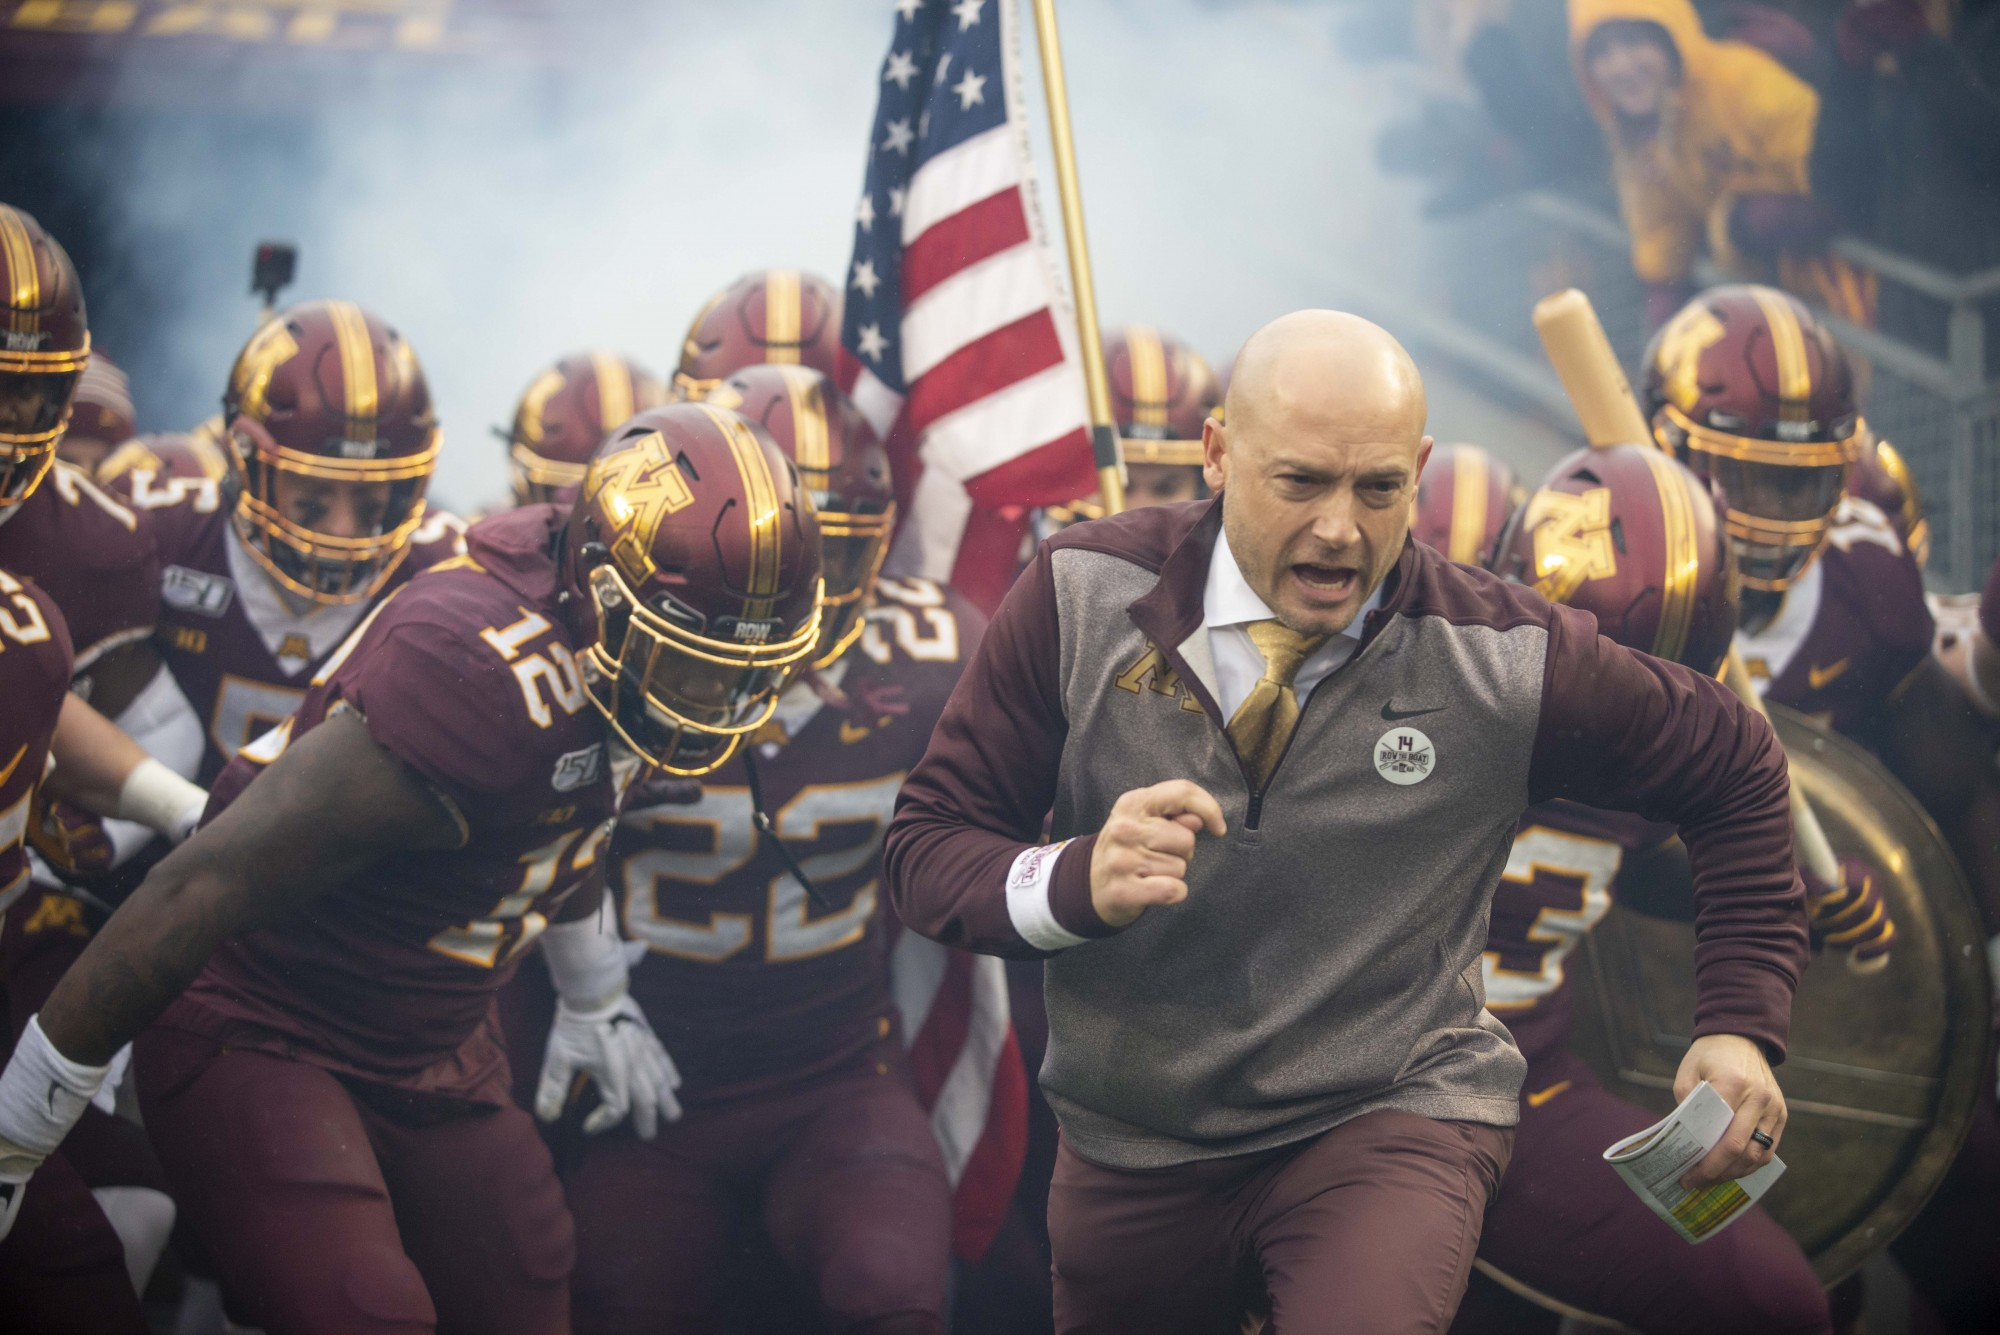 The Gophers make their entrance onto the field at TCF Bank Stadium on Saturday, Nov. 30.